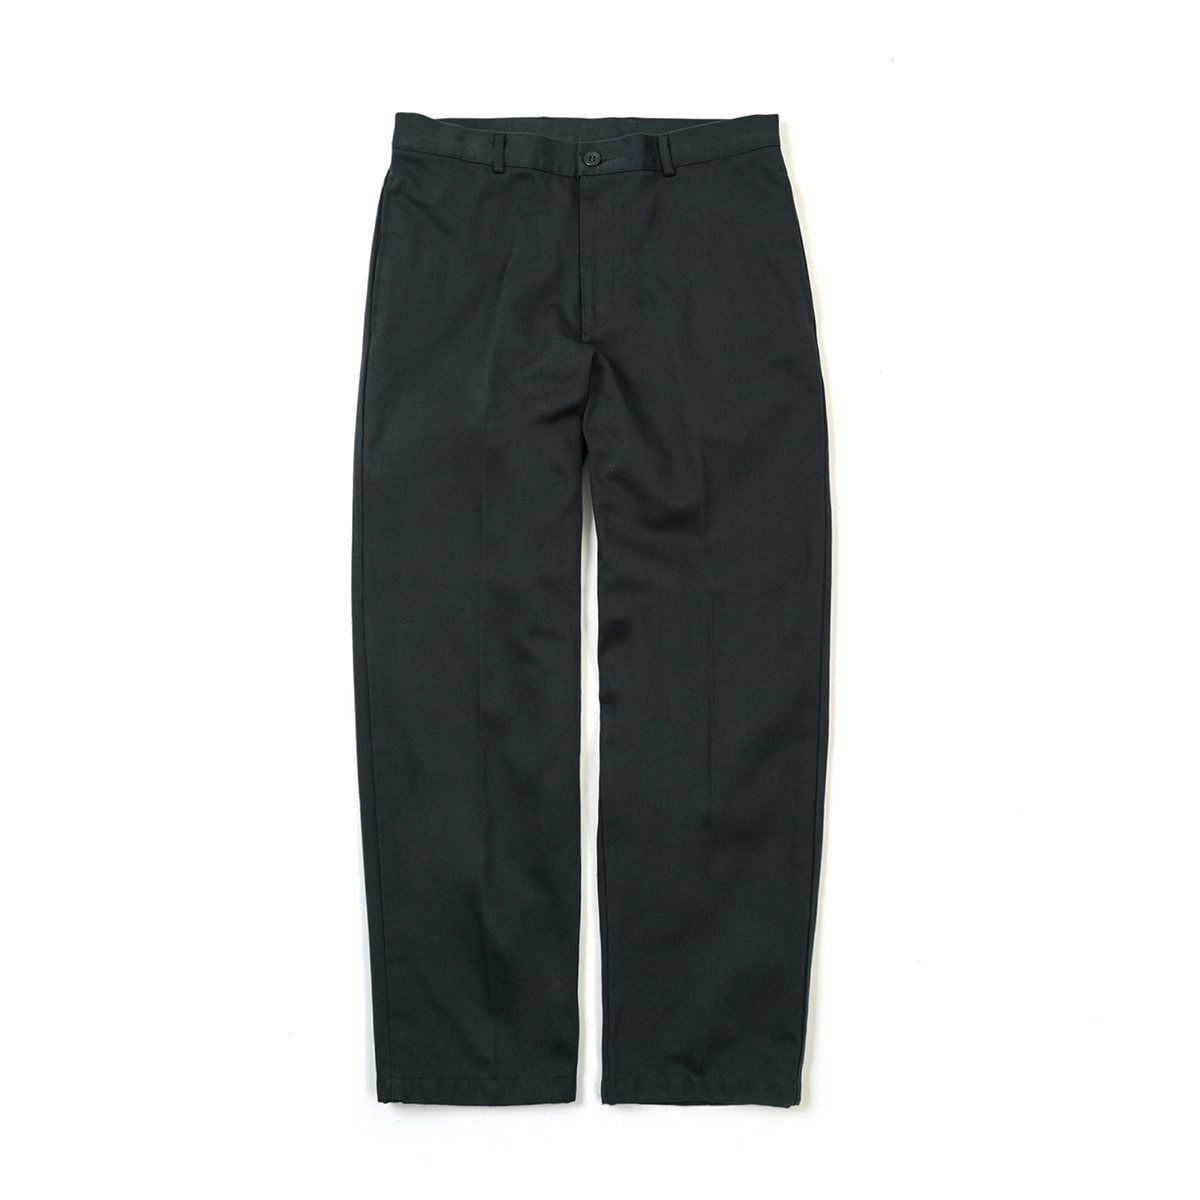 Basic Chino Pants, Charcoal